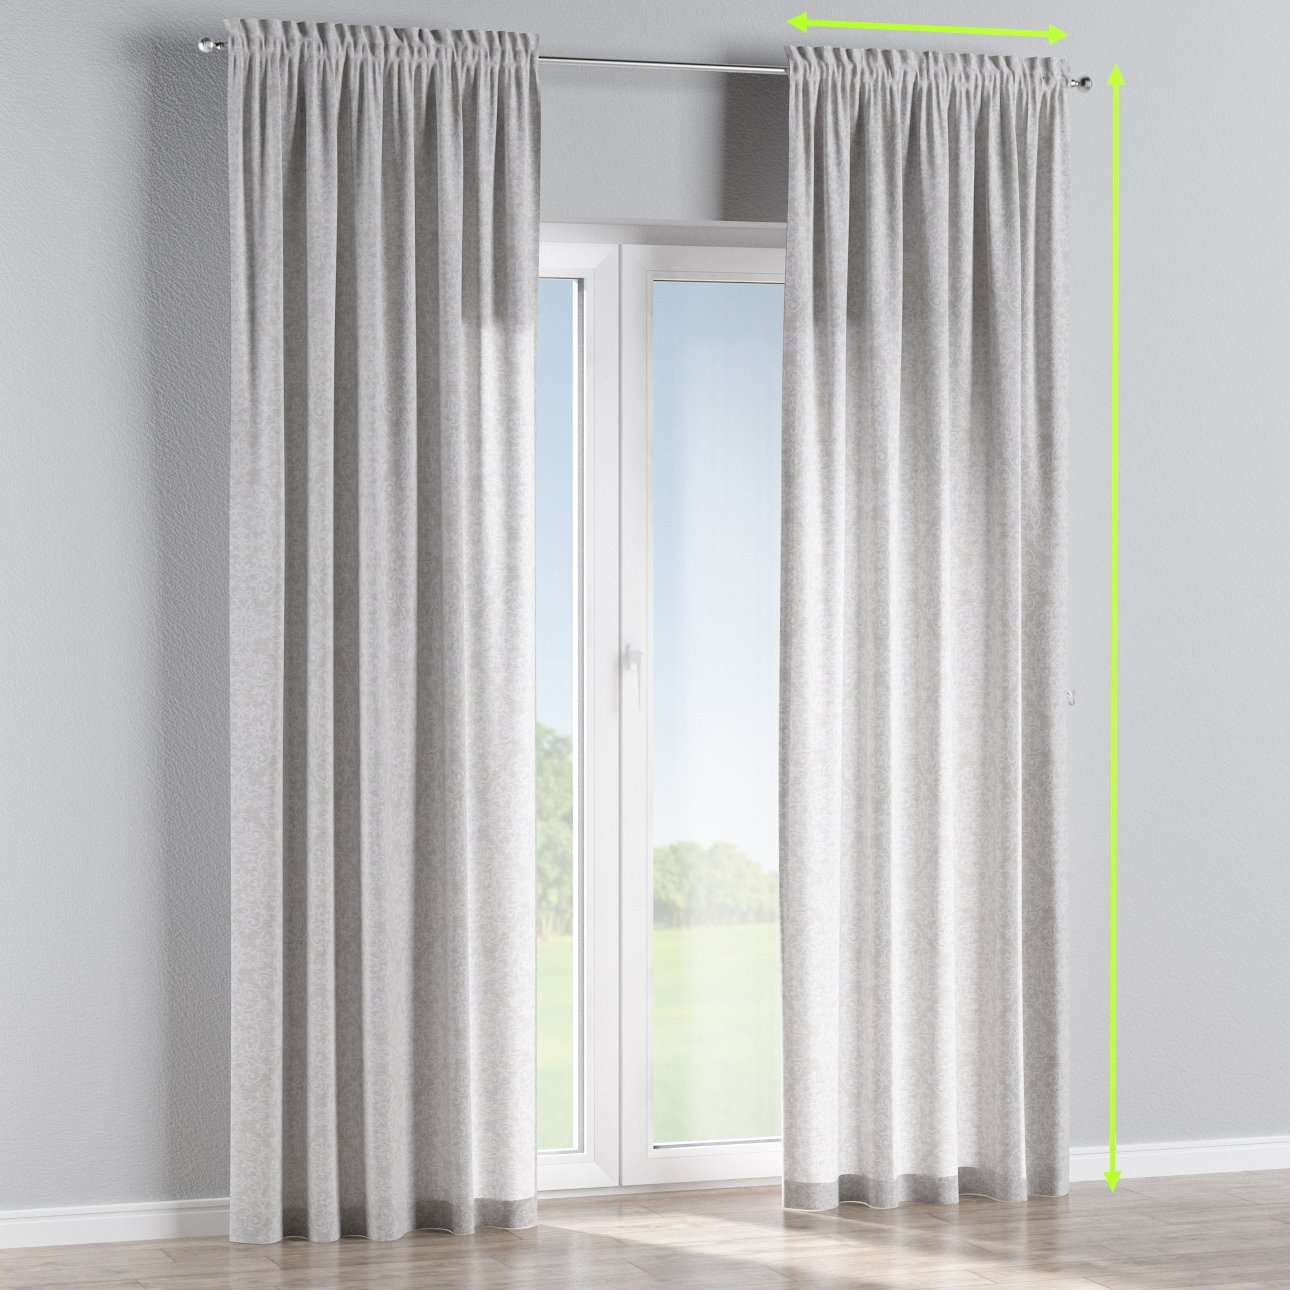 Slot and frill curtains in collection Venice, fabric: 140-49